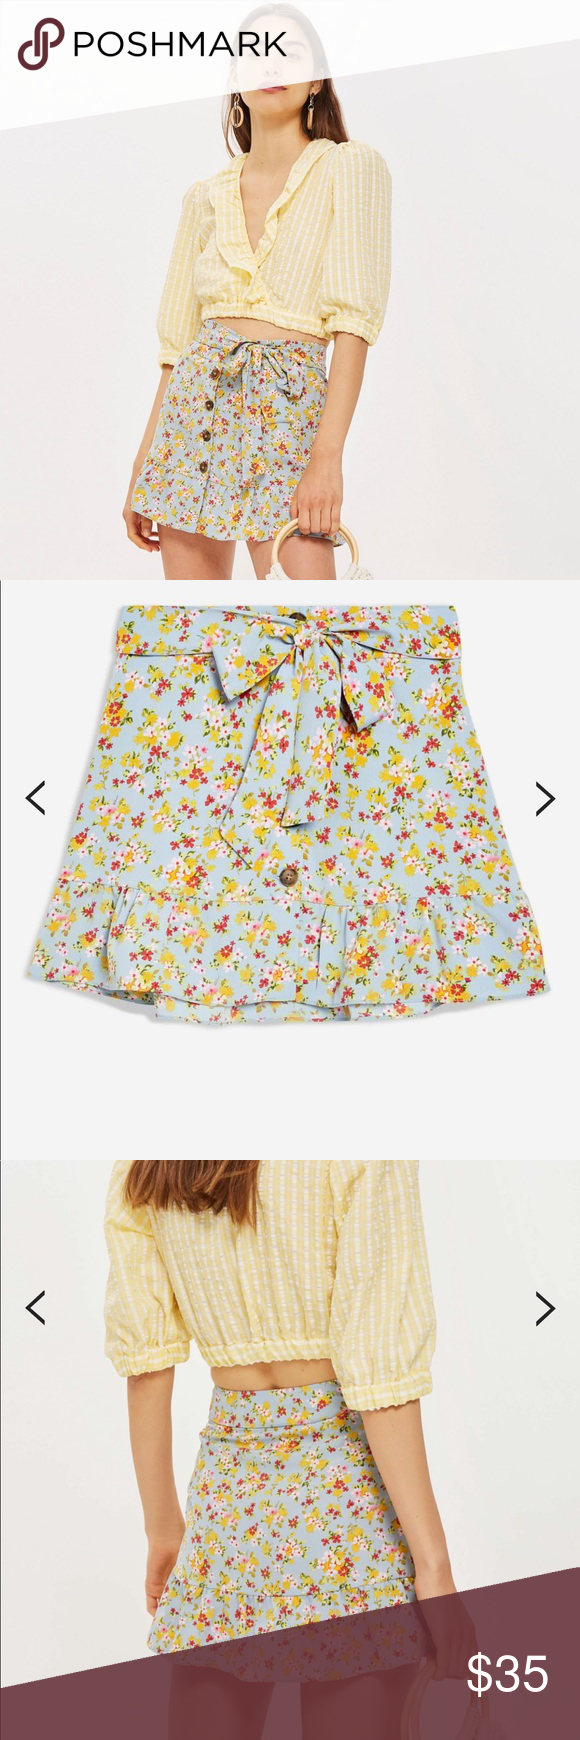 7ef2a4f80 LIKE NEW TOPSHOP PETITE FLORAL TIE BUTTON SKIRT Channel an ultra-feminine  look with our